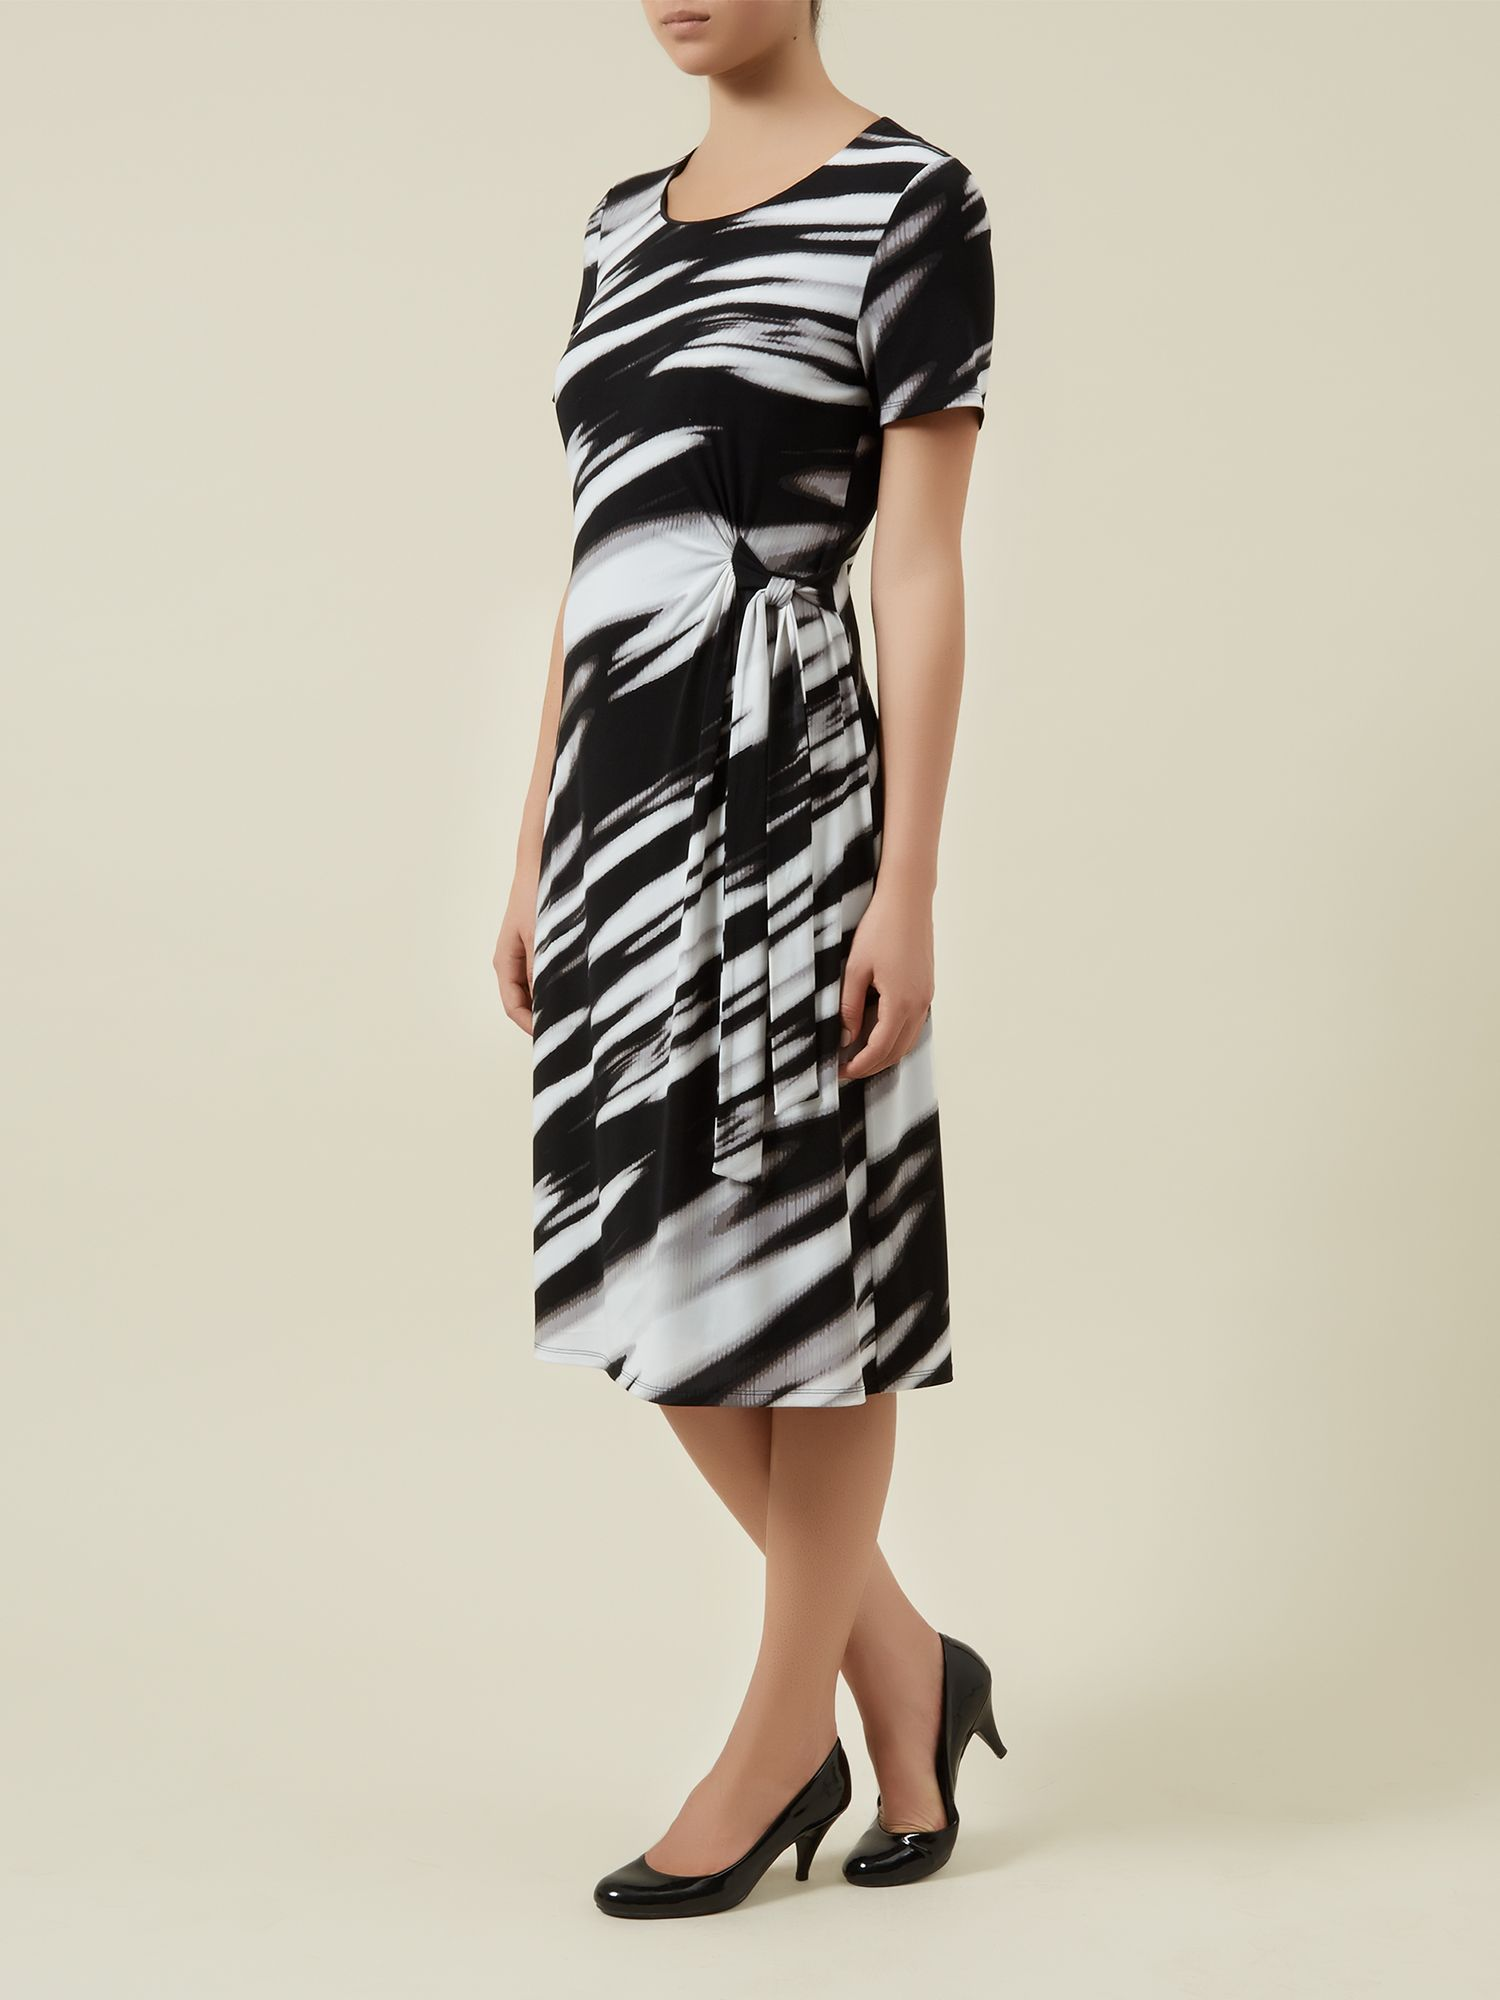 Waterstripe jersey dress